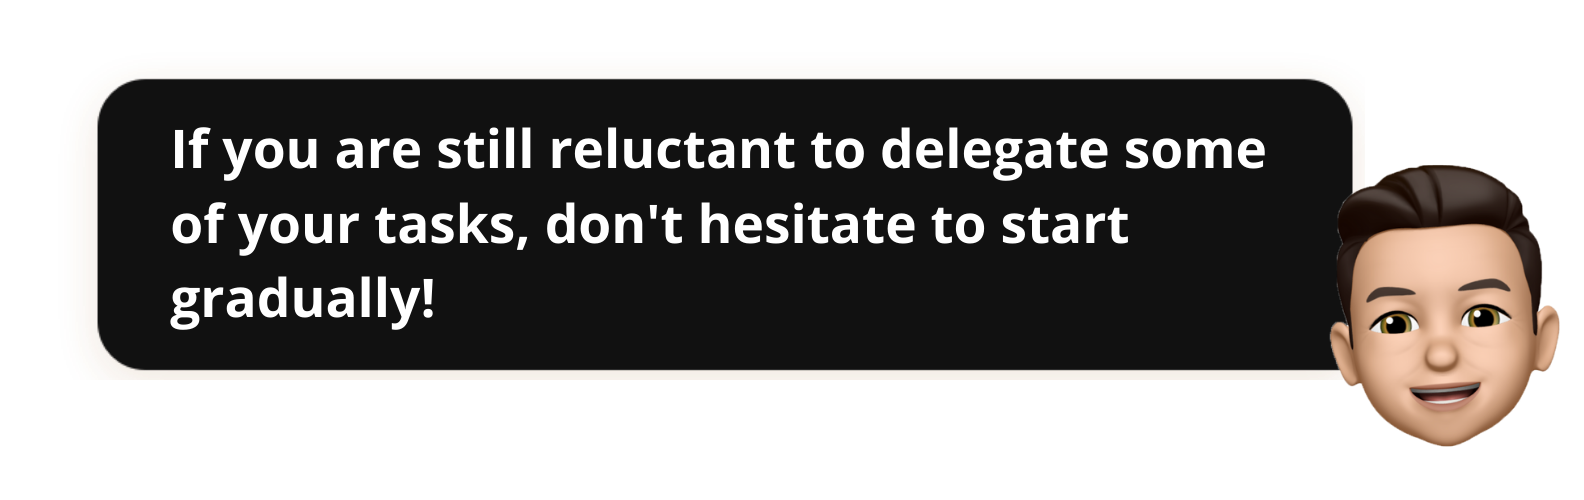 If you are still reluctant to delegate some of your tasks, don't hesitate to start gradually!-Popwork